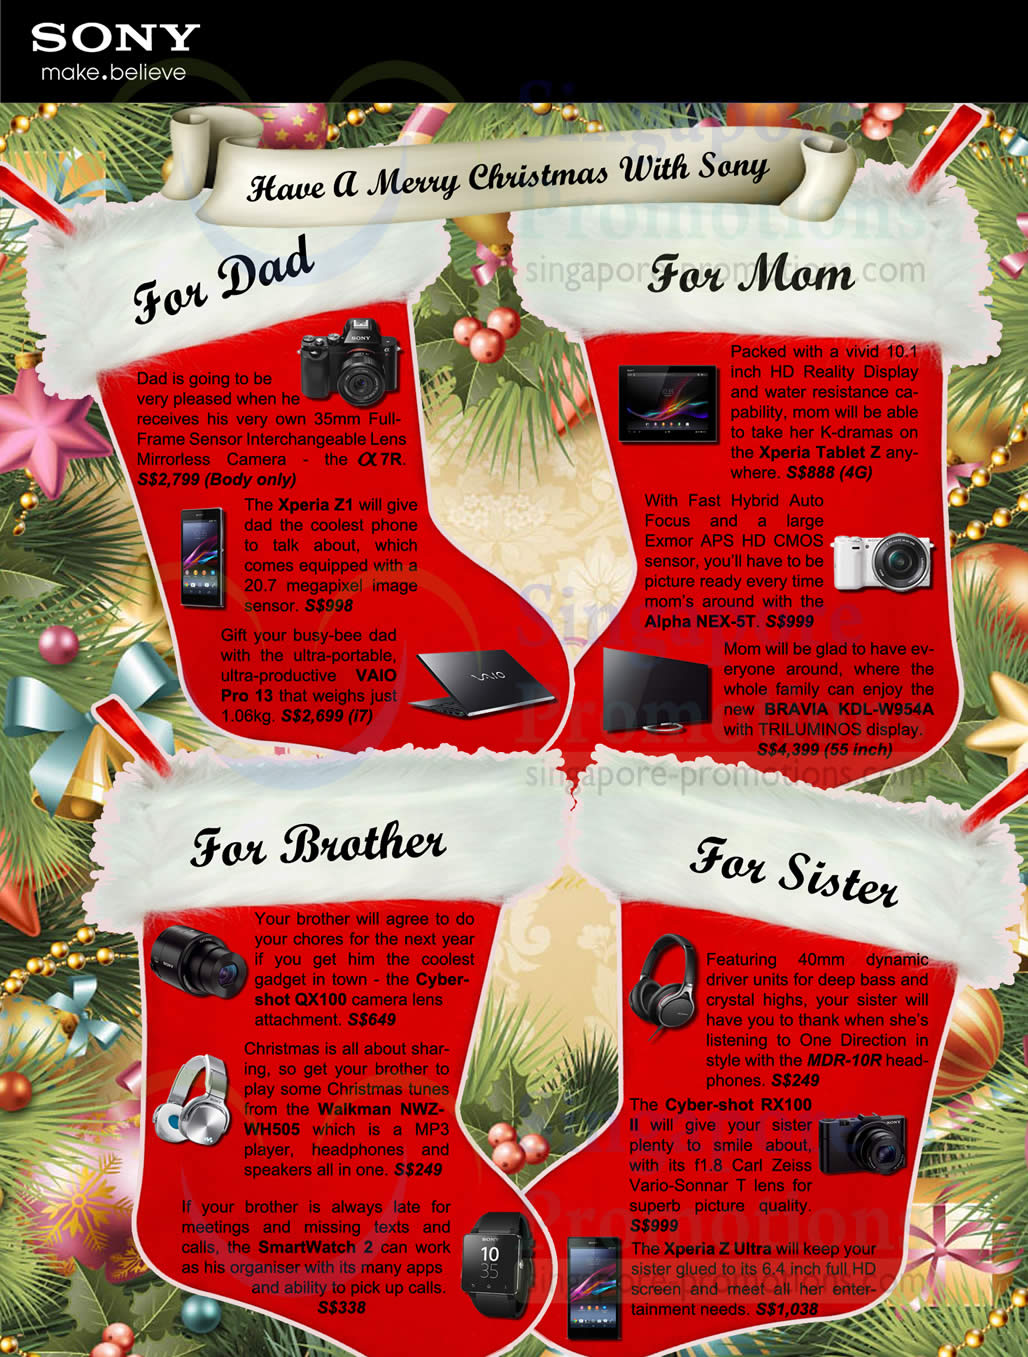 Sony Christmas Gift Guide 2013 9 Dec 2013